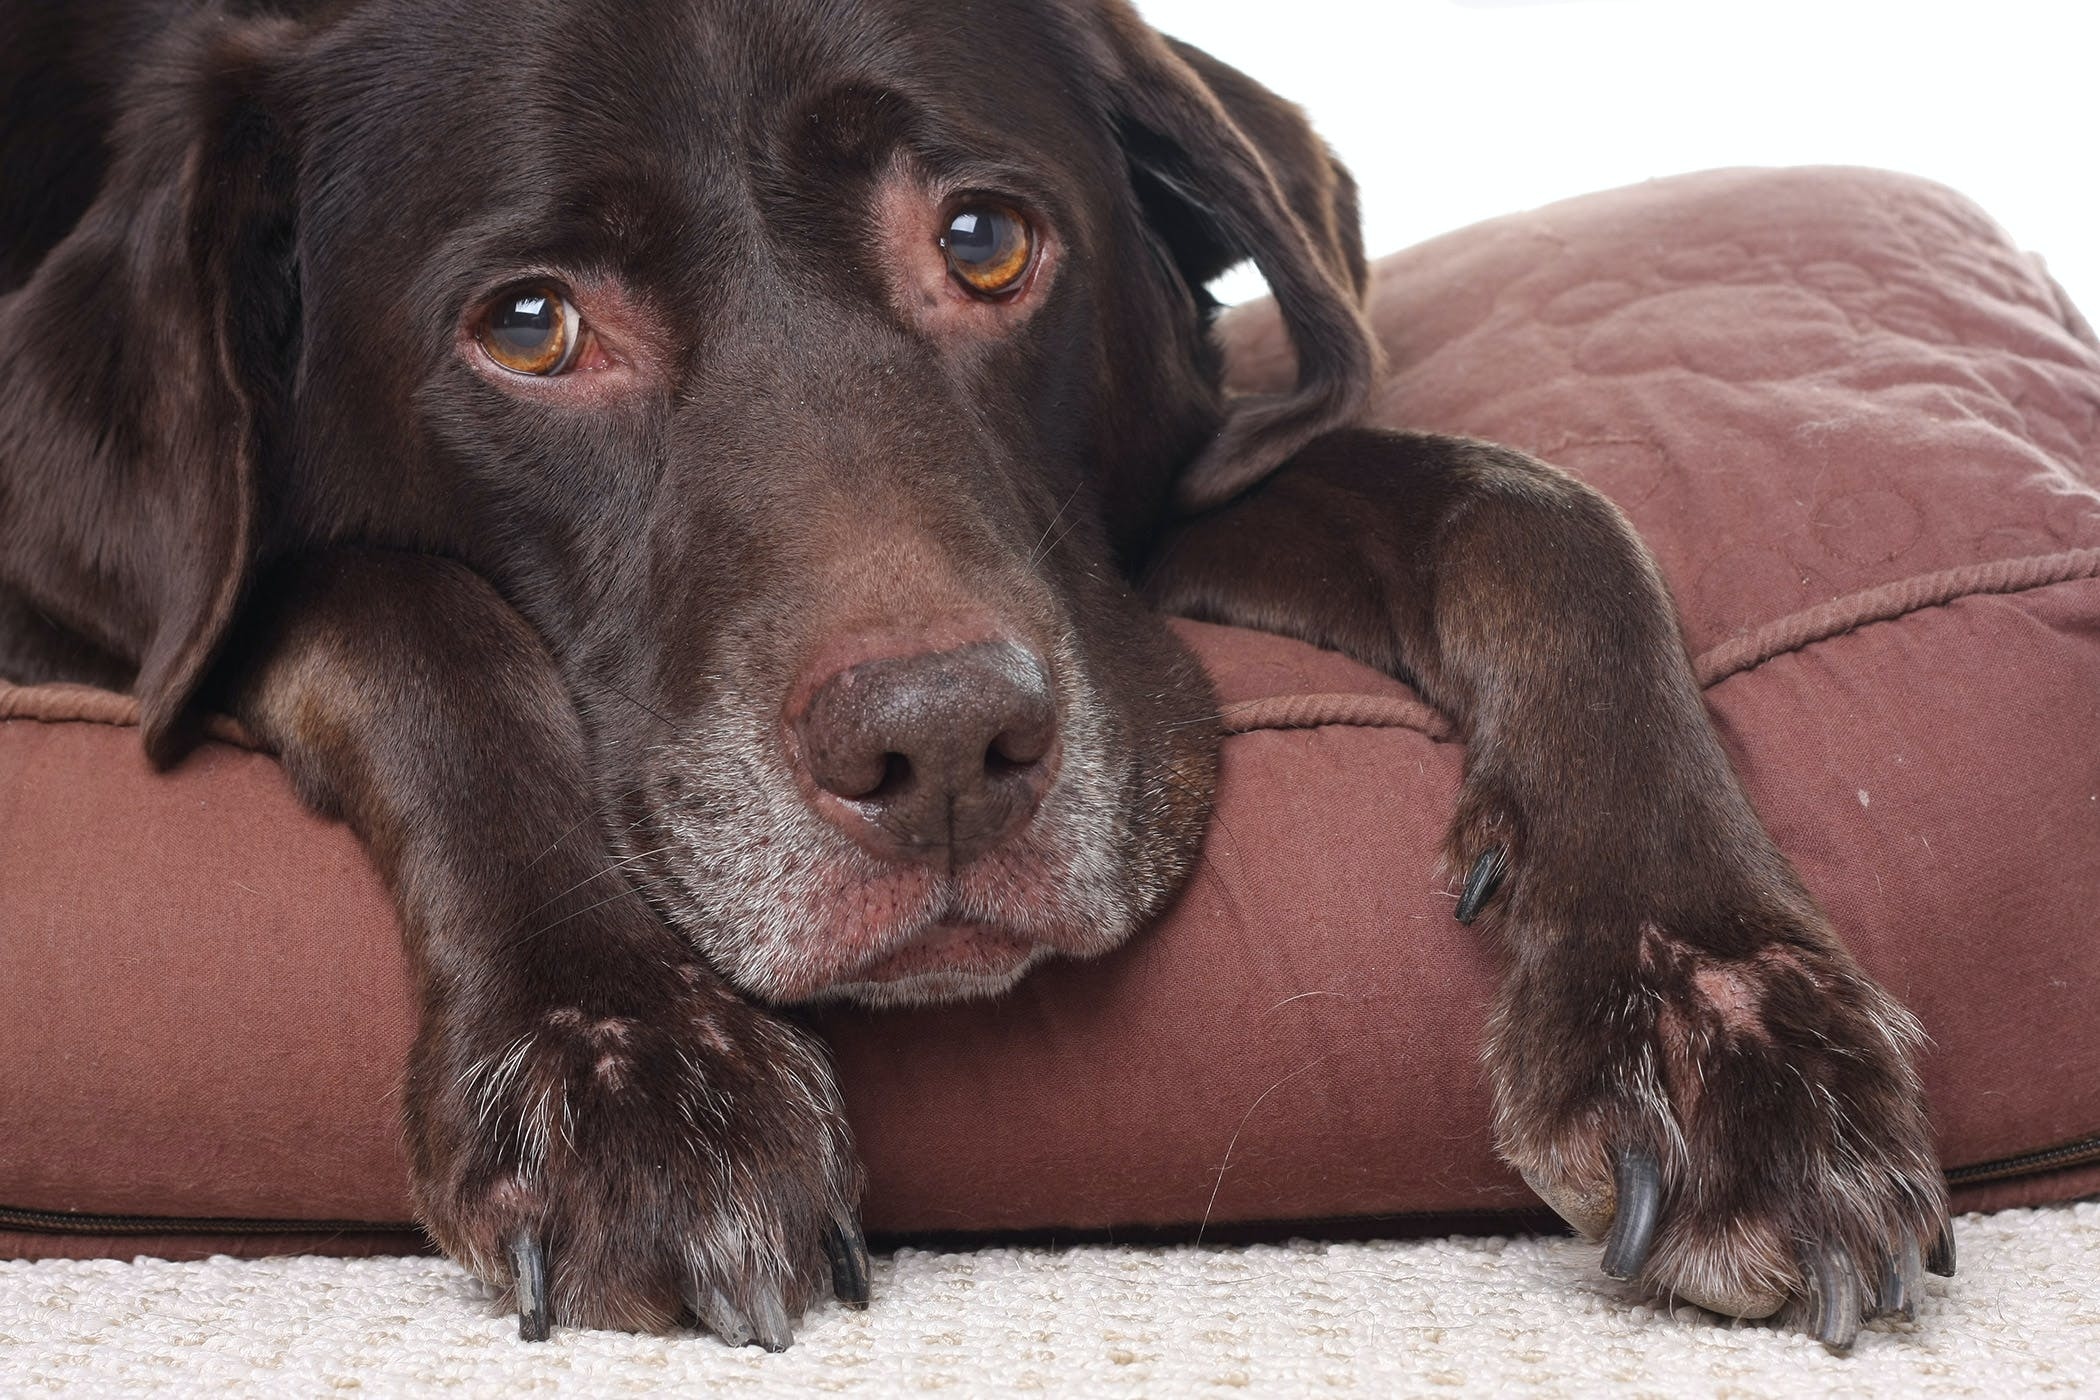 Chronic Vomiting in Dogs - Symptoms, Causes, Diagnosis